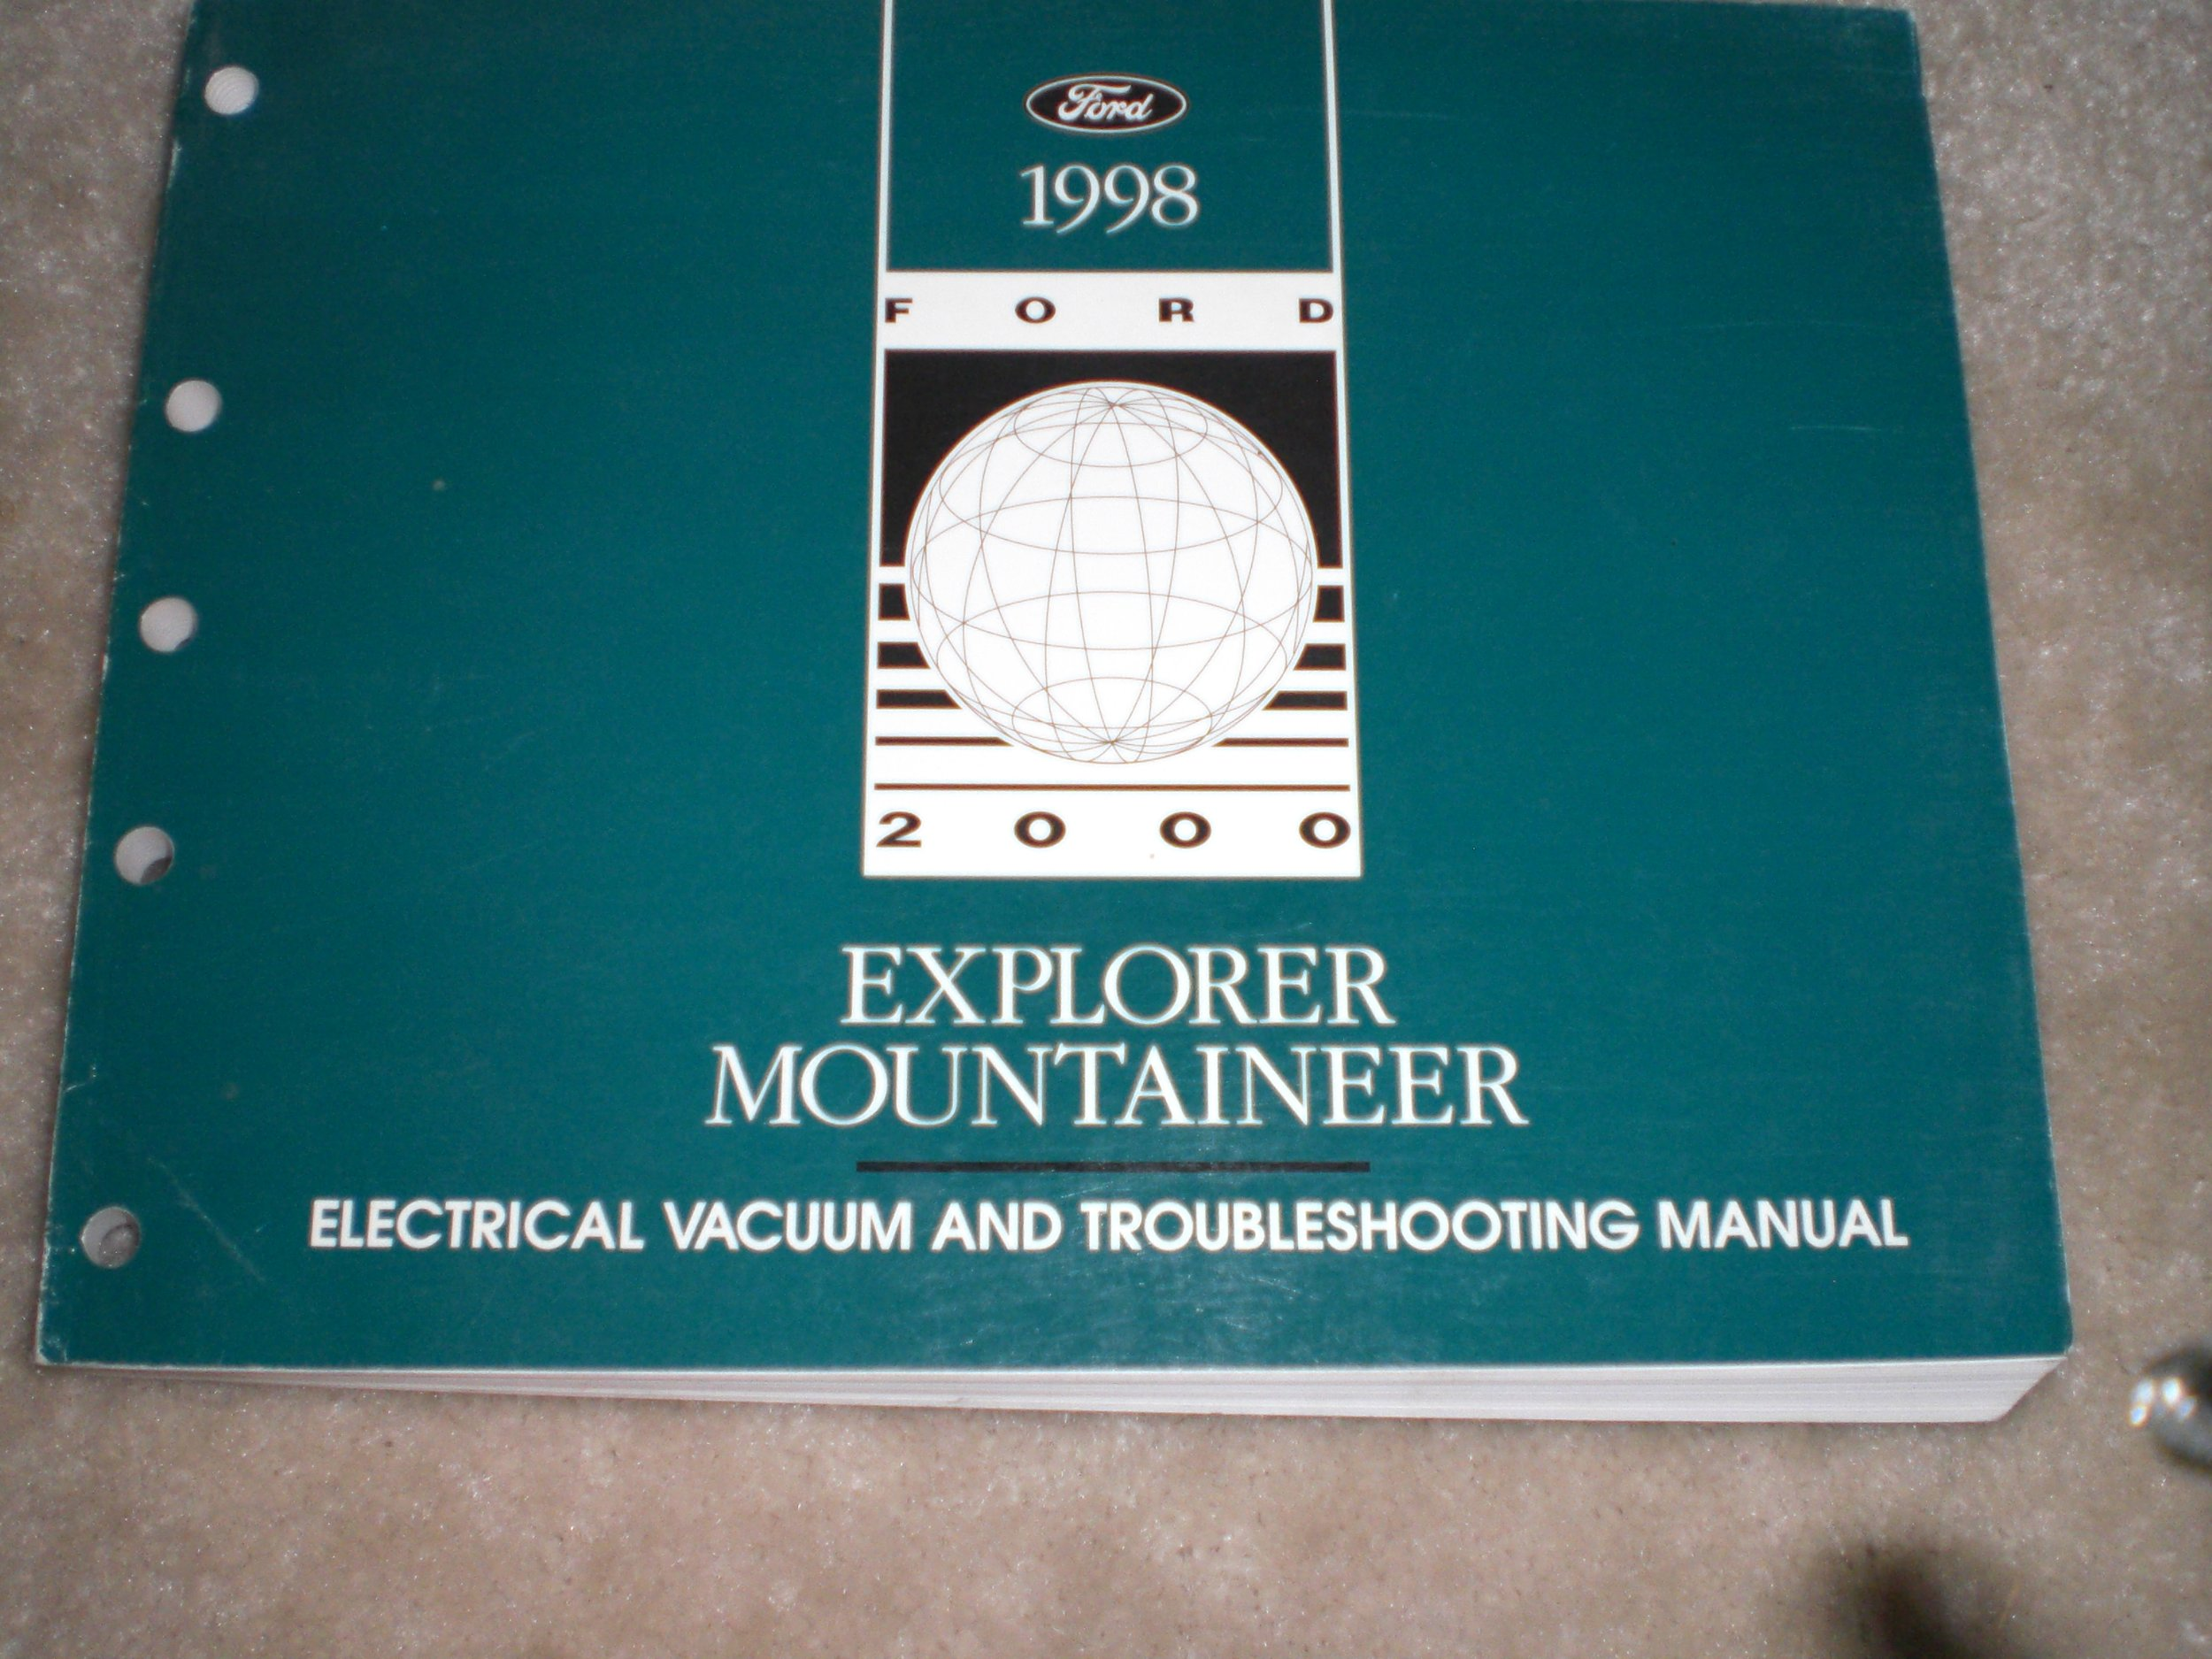 1998 Ford Electrical Vacuum & Troubleshooting Manual Explorer & Mountaineer:  ford motor co.: Amazon.com: Books